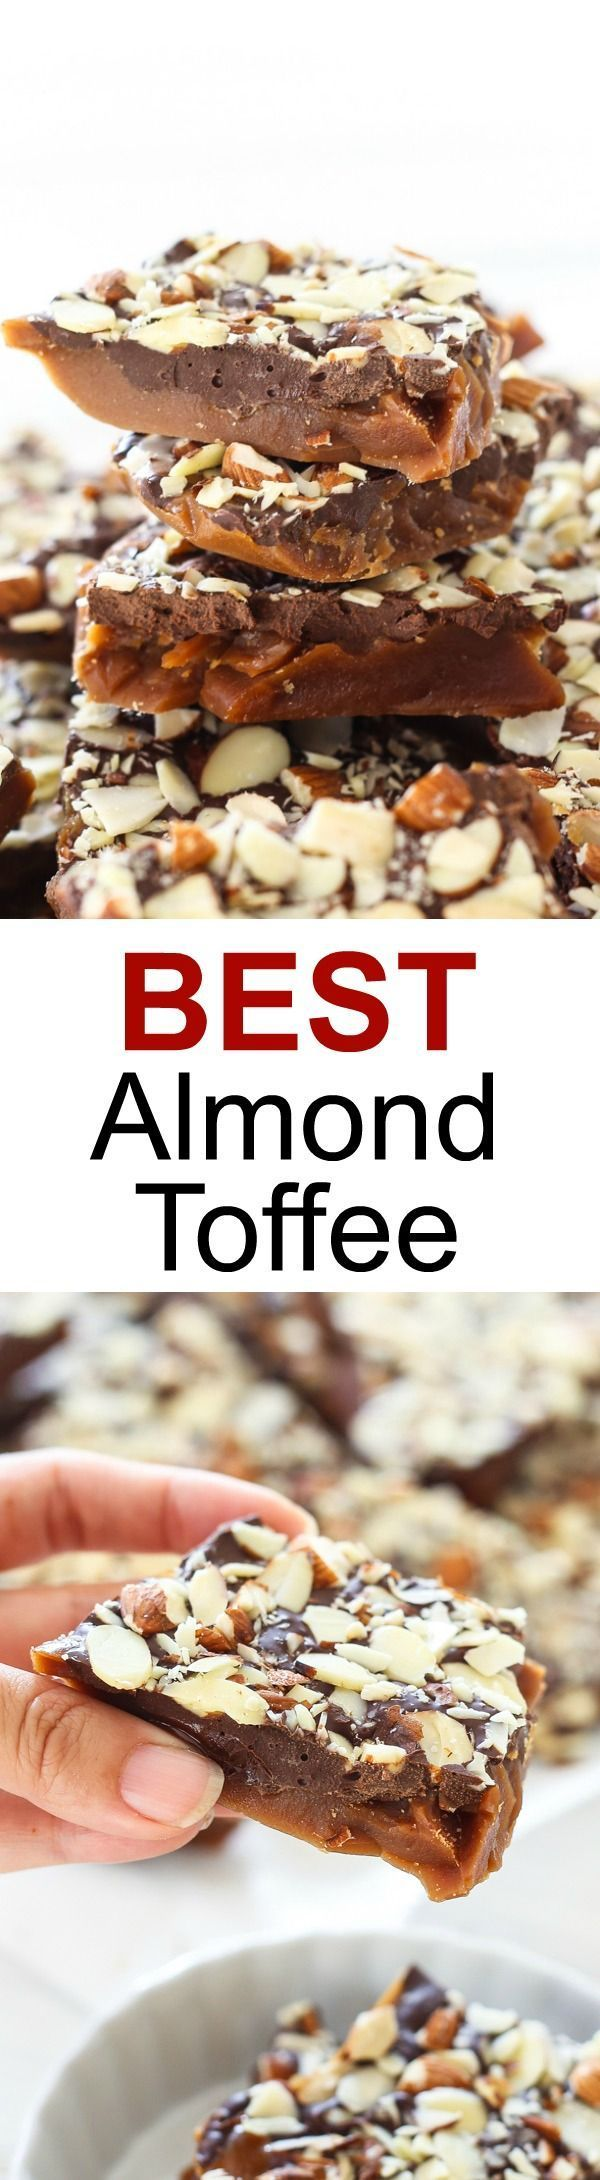 Almond Toffee – easy and the best homemade almond toffee recipe that is sweet, nutty, crunchy. Perfect candy for Christmas holidays | rasamalaysia.com